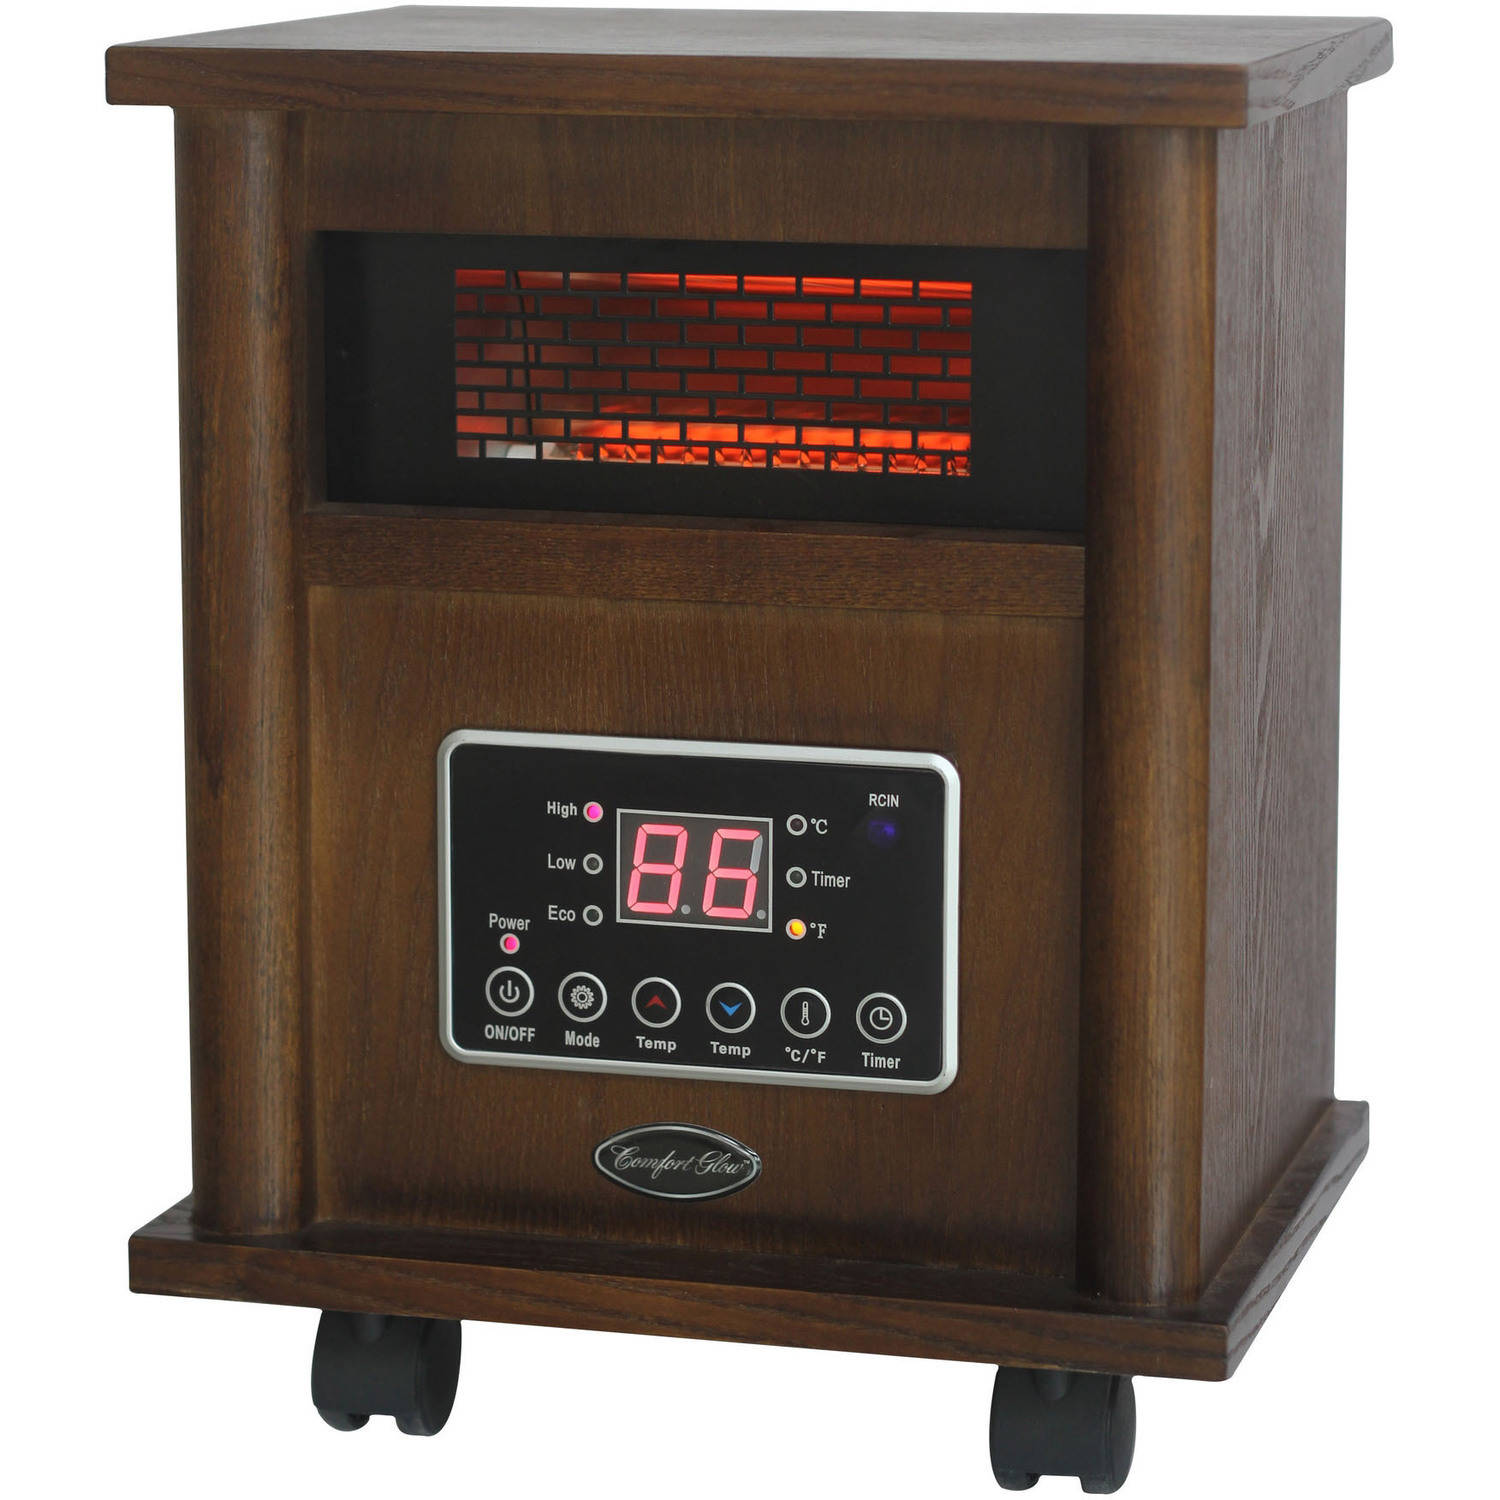 Comfort Glow Infrared Quartz Heater, Wood